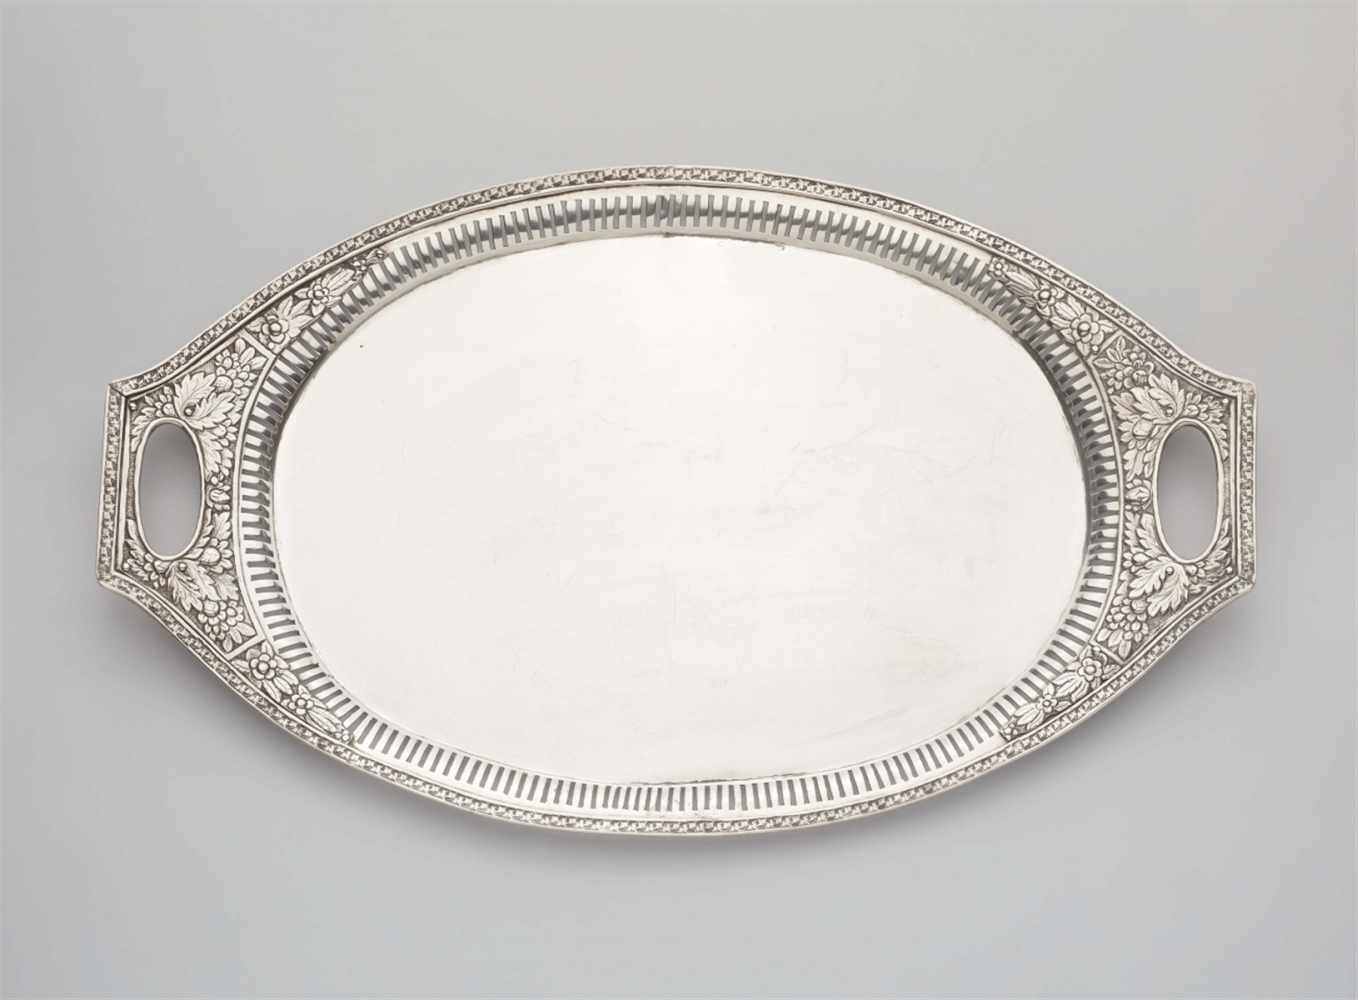 Lot 357 - A Neoclassical silver platterOval tray. Pierced rim with acanthus and flowerhead reliefs. L 54; W 33